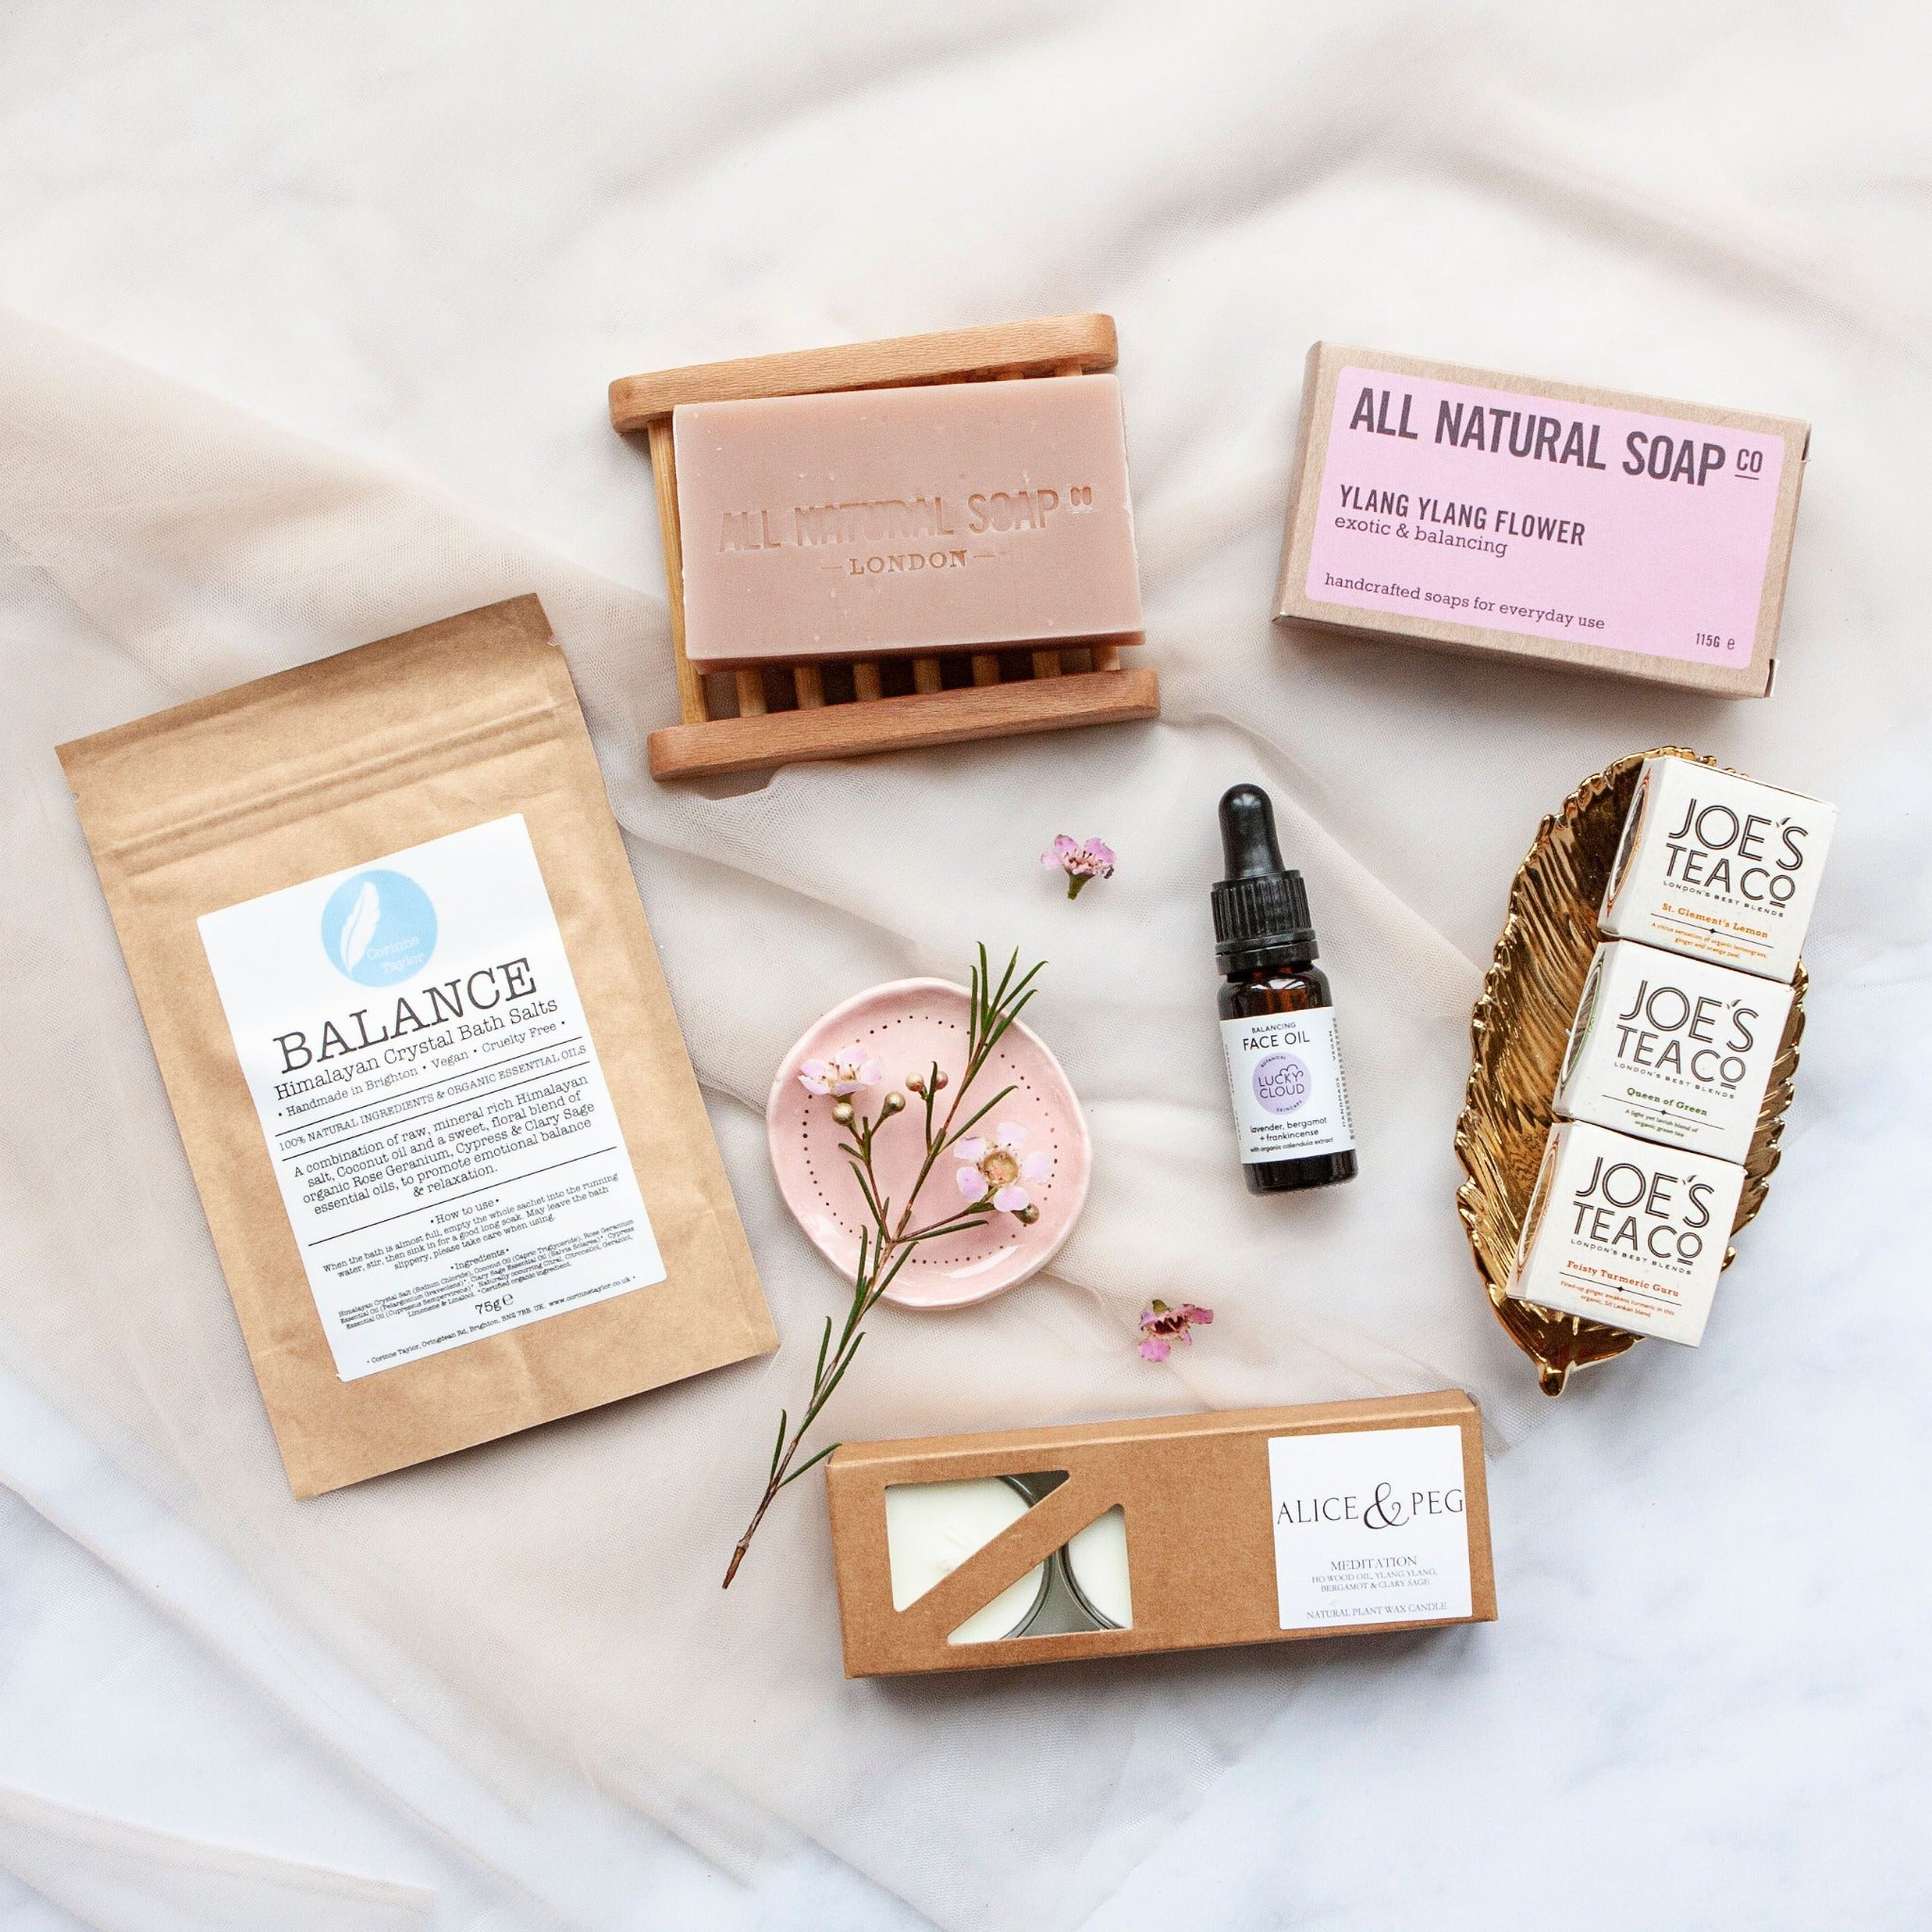 Alice & Peg Balance Box - Vegan letterbox gift set, designed to help you feel balanced, featuring handmade Balancing Face Oil, handmade Balance Bath Salts, recycled glass natural tealights, handmade Ylang Ylang soap and a set of three organic herbal teas.